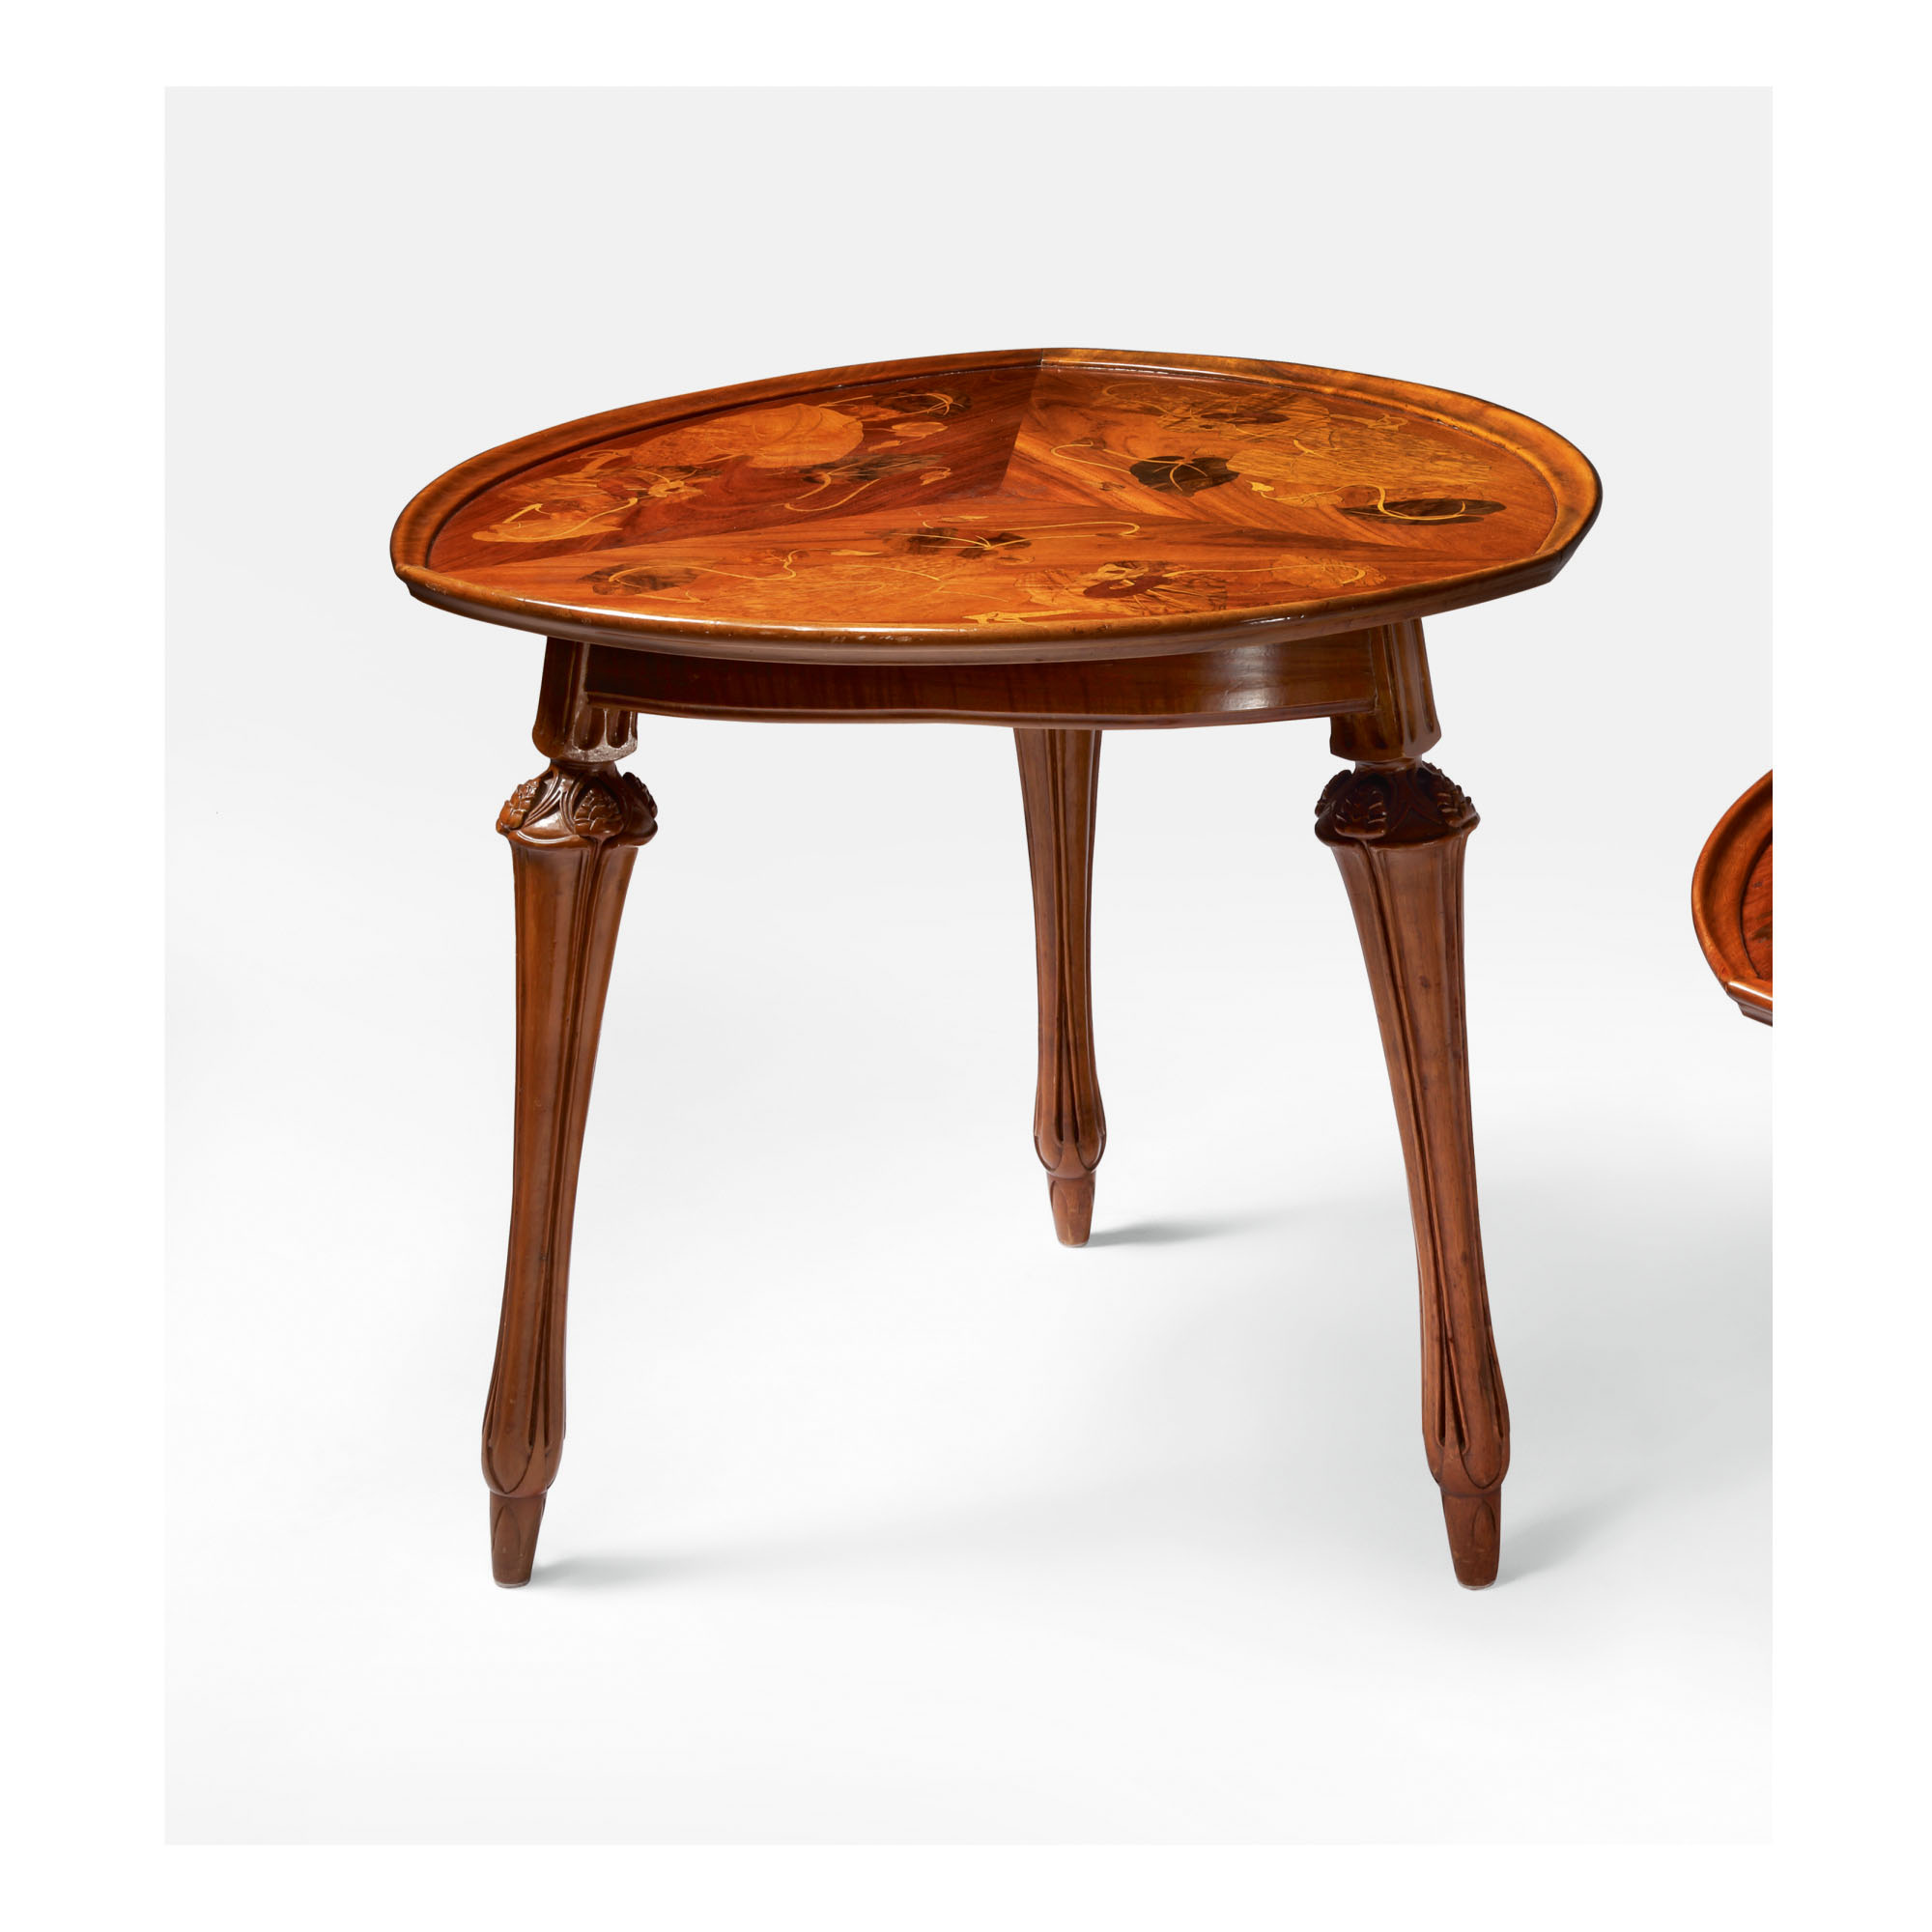 LOUIS MAJORELLE | TEA TABLE